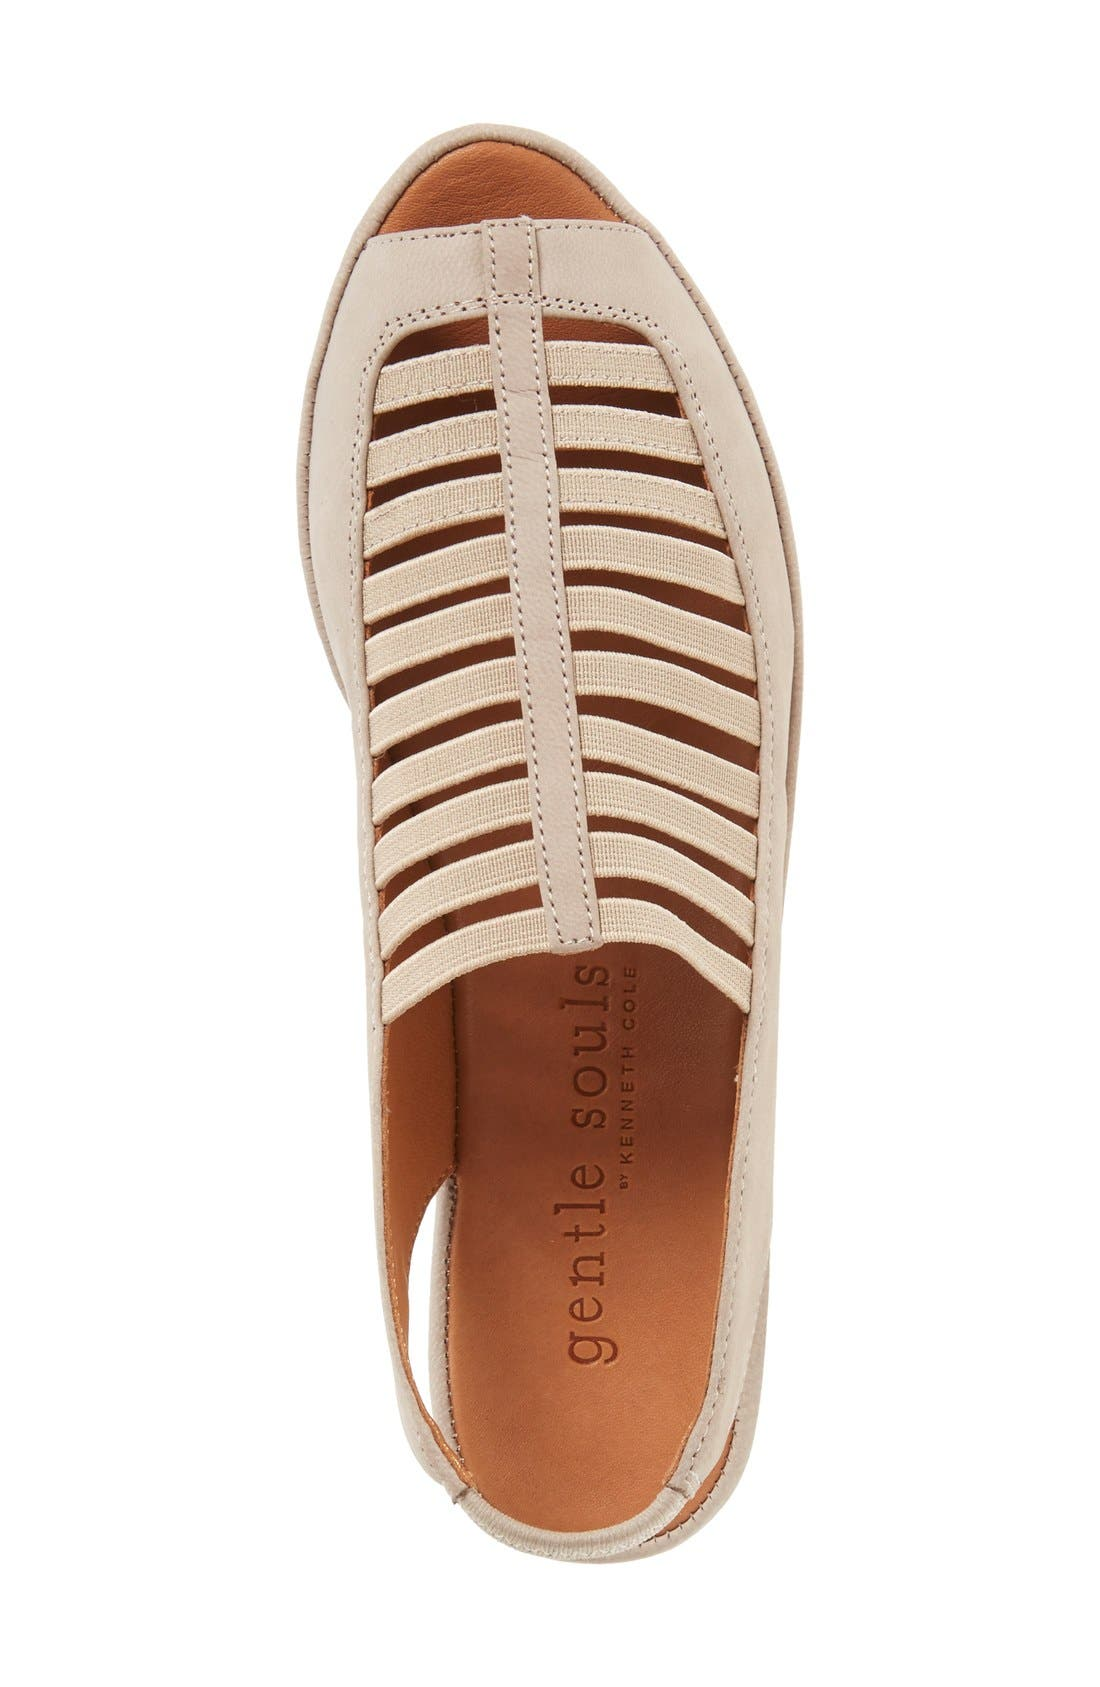 by Kenneth Cole 'Lee' Sandal,                             Alternate thumbnail 18, color,